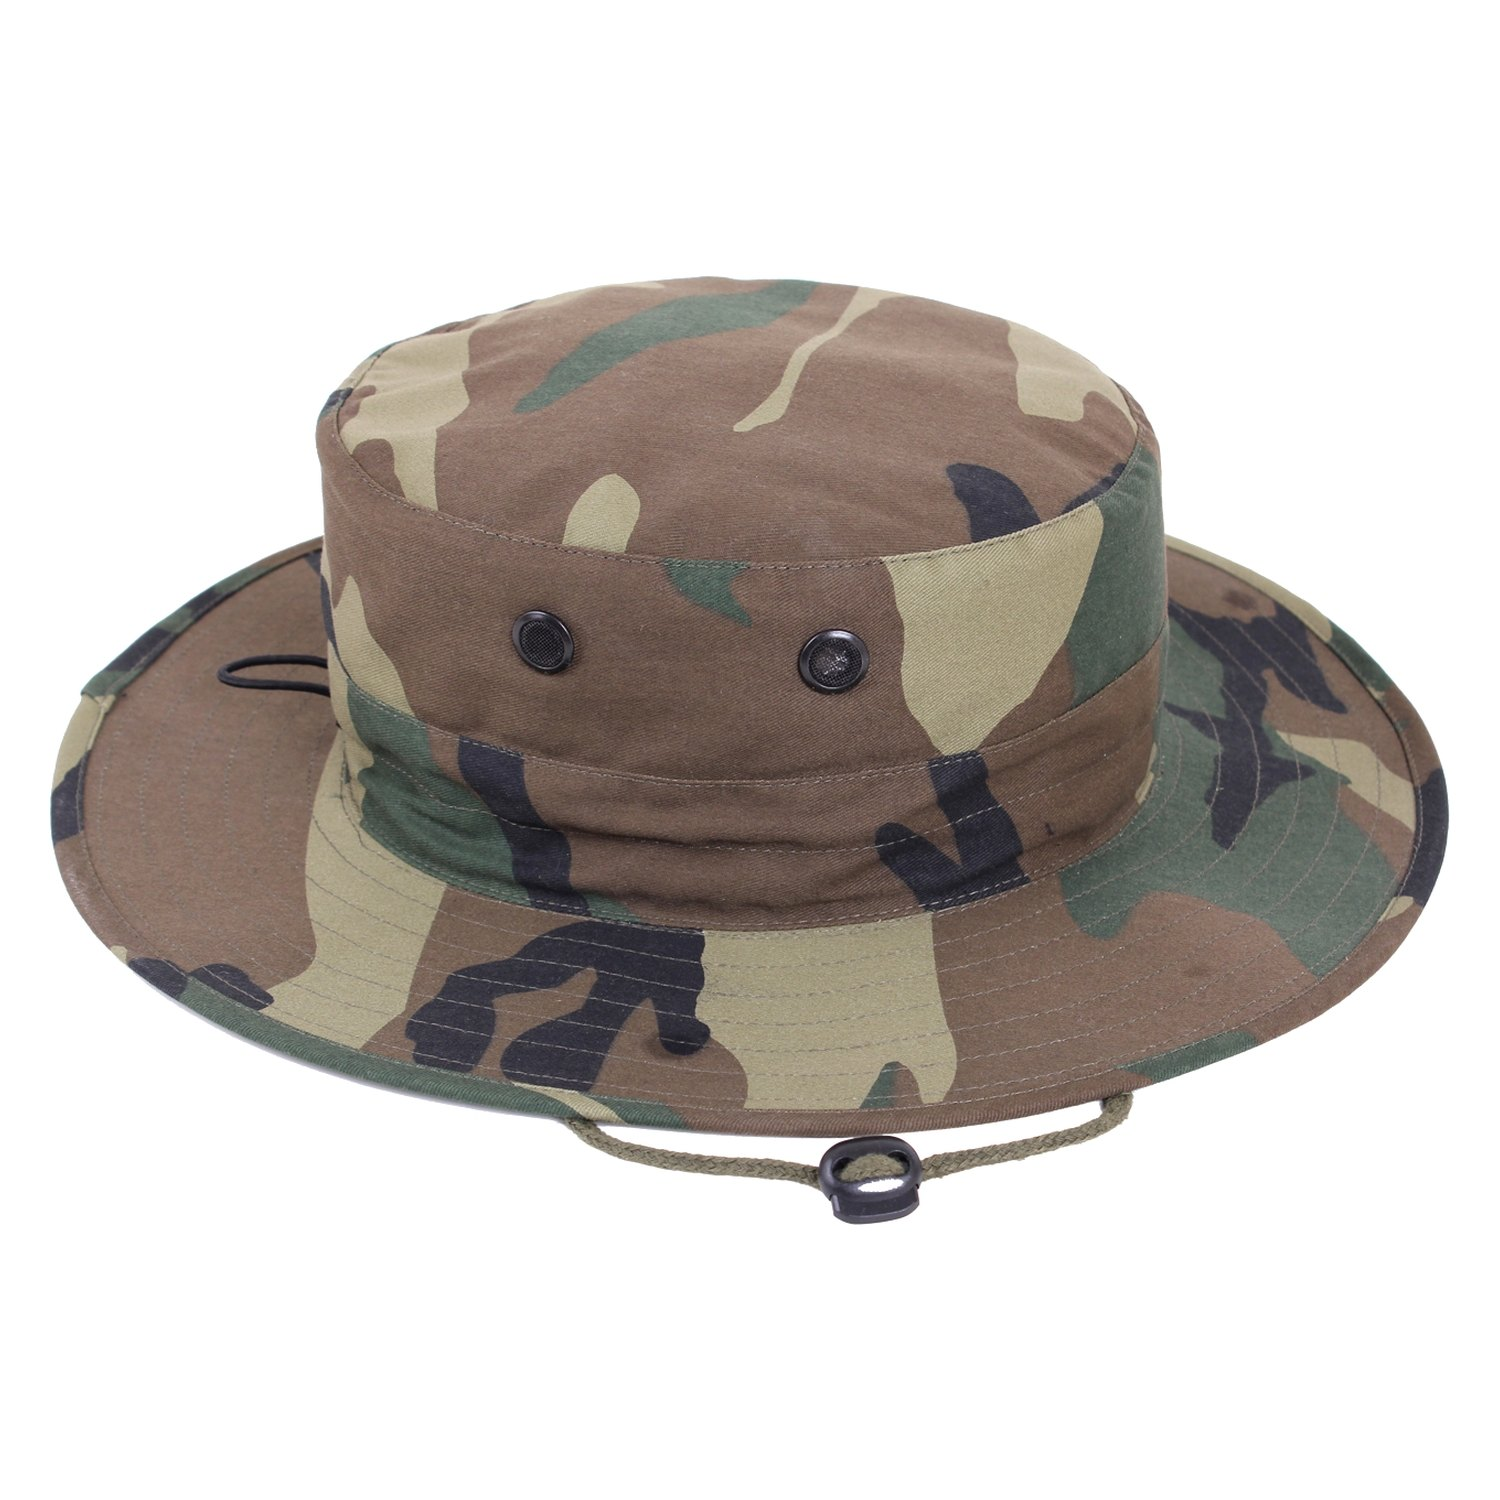 c3c2b8f8922 Rothco® 52558 - Adjustable Boonie Hat - RECREATIONiD.com